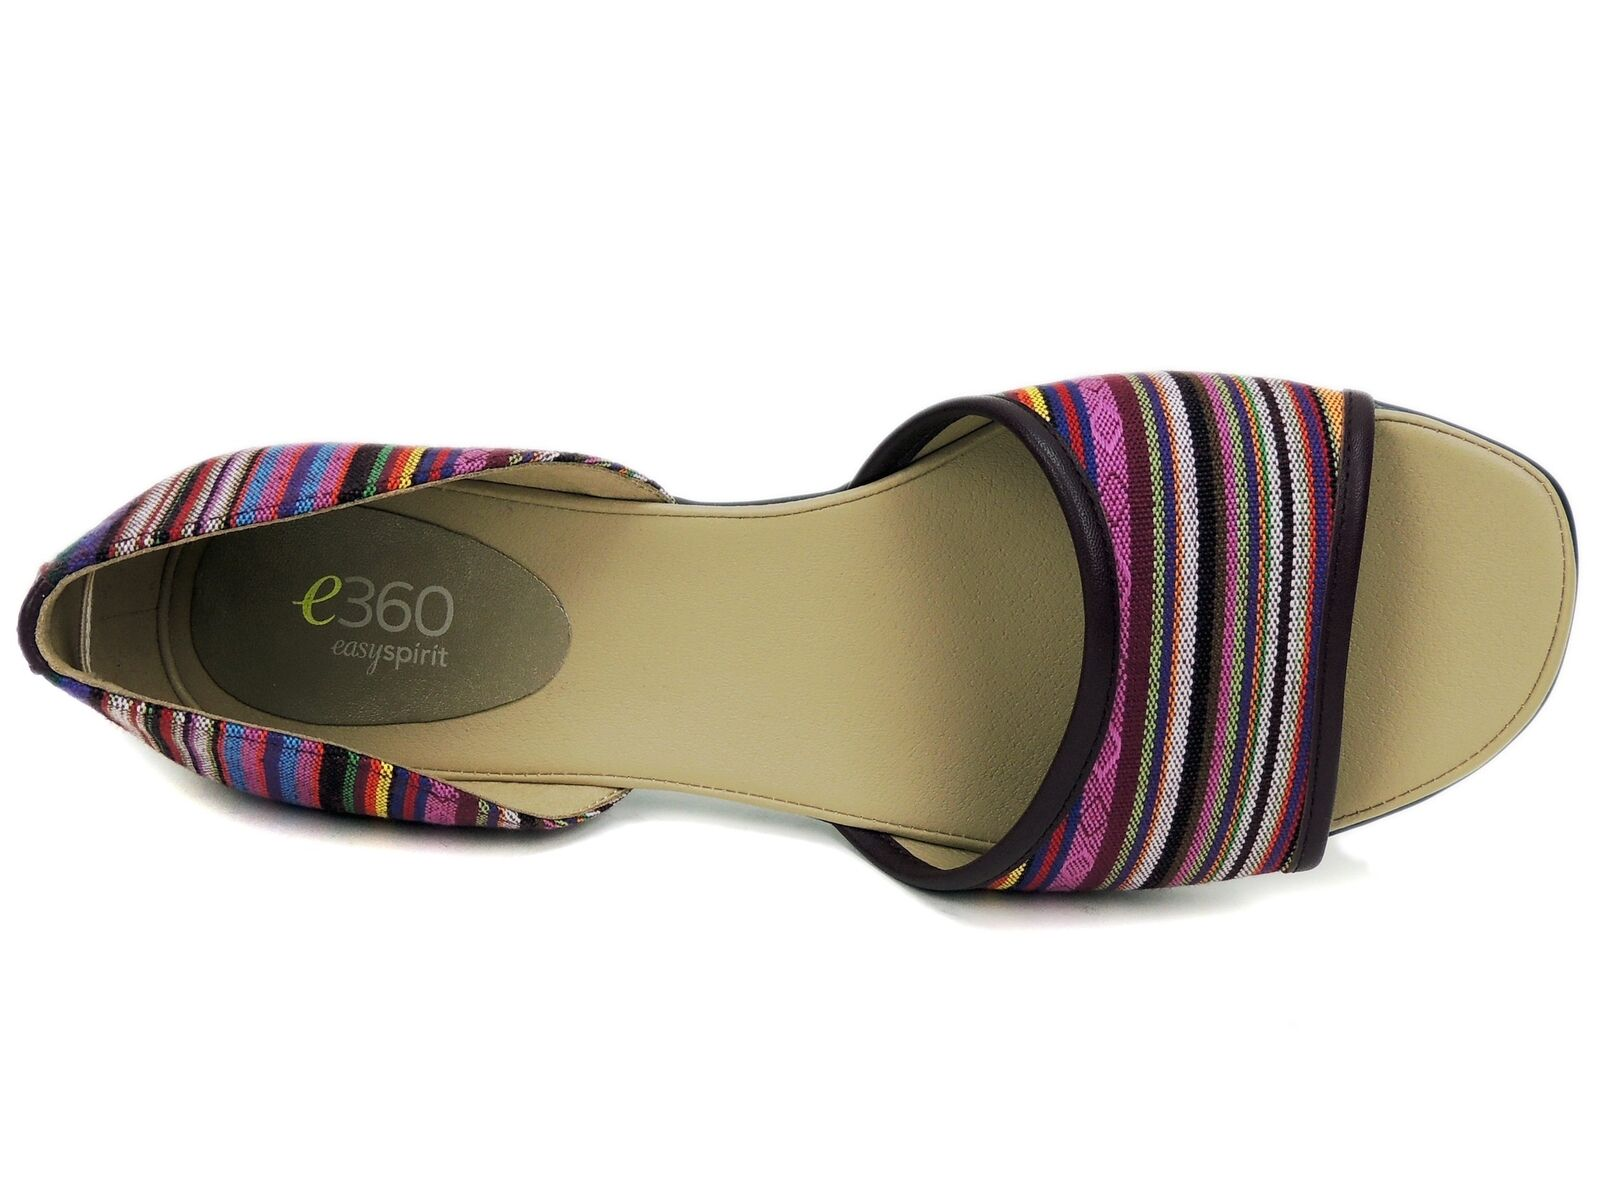 Easy Spirit Women's Kalindi Flat Sandals Pink Pink Pink Multi Striped 8 M 95f67a